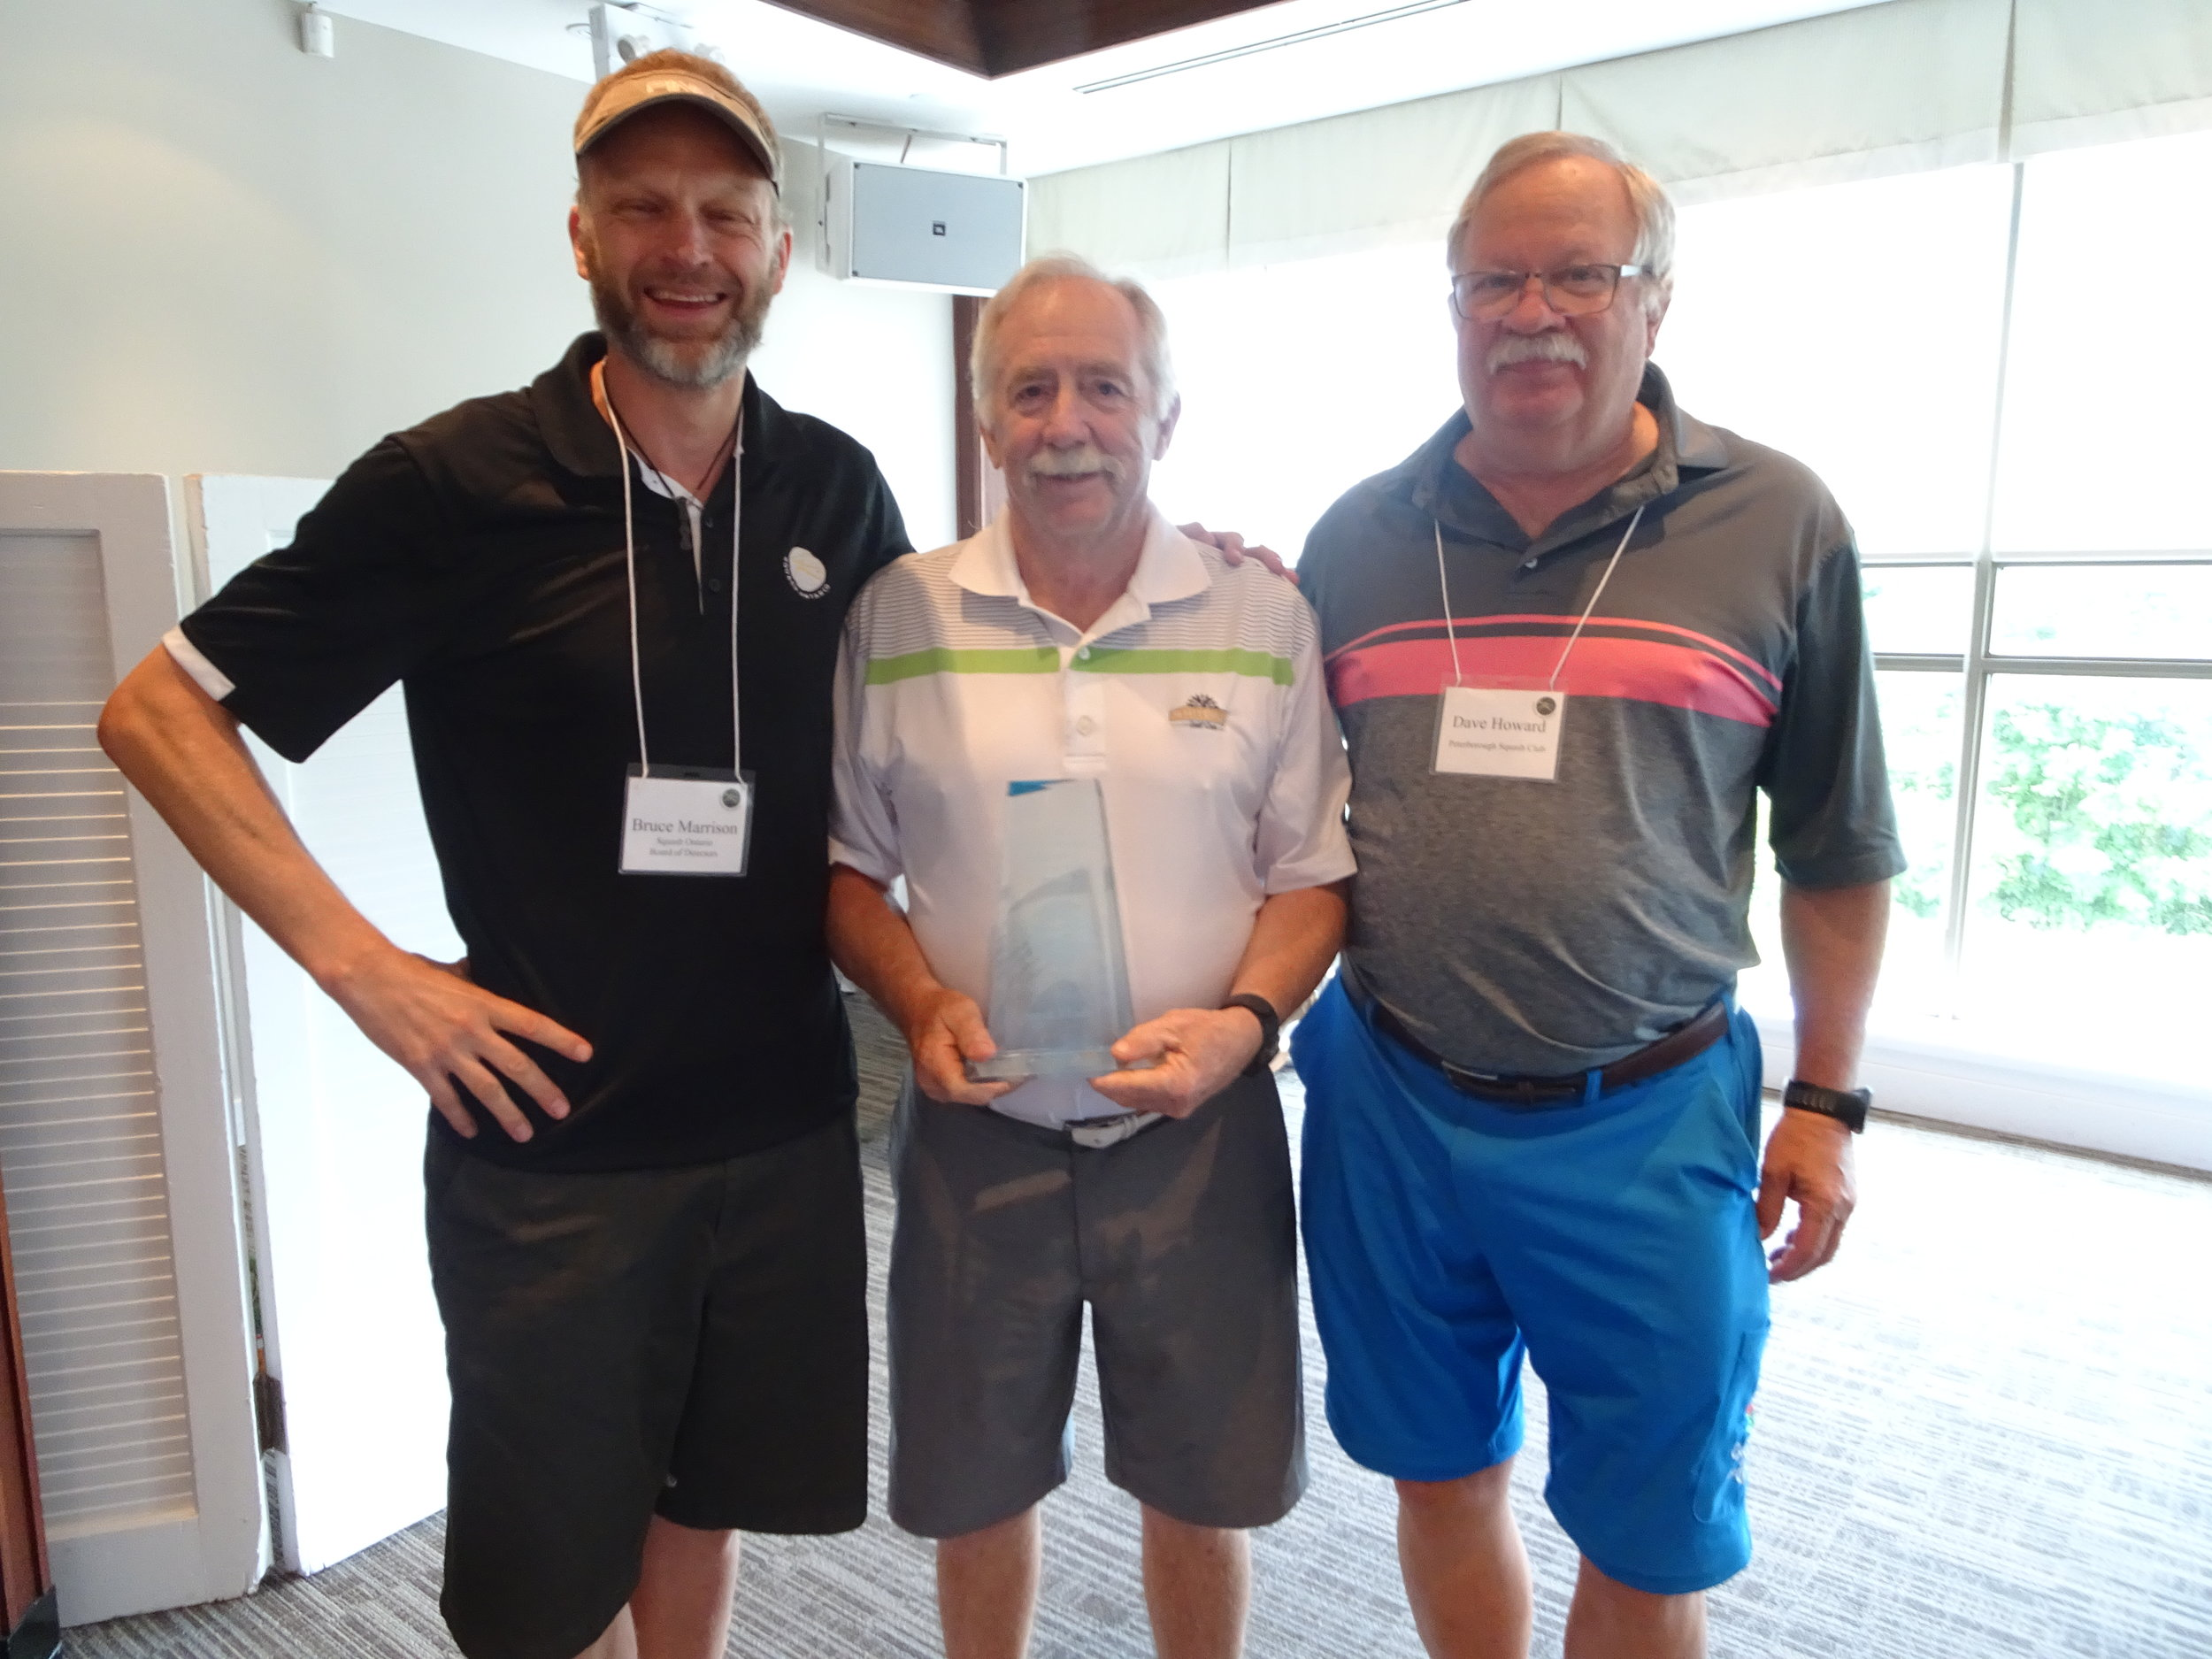 Steve Flude (centre) accepting his award with Squash Ontario President Bruce Marrison (left) and Canadian Officiating Committee Chair Dave Howard (right)